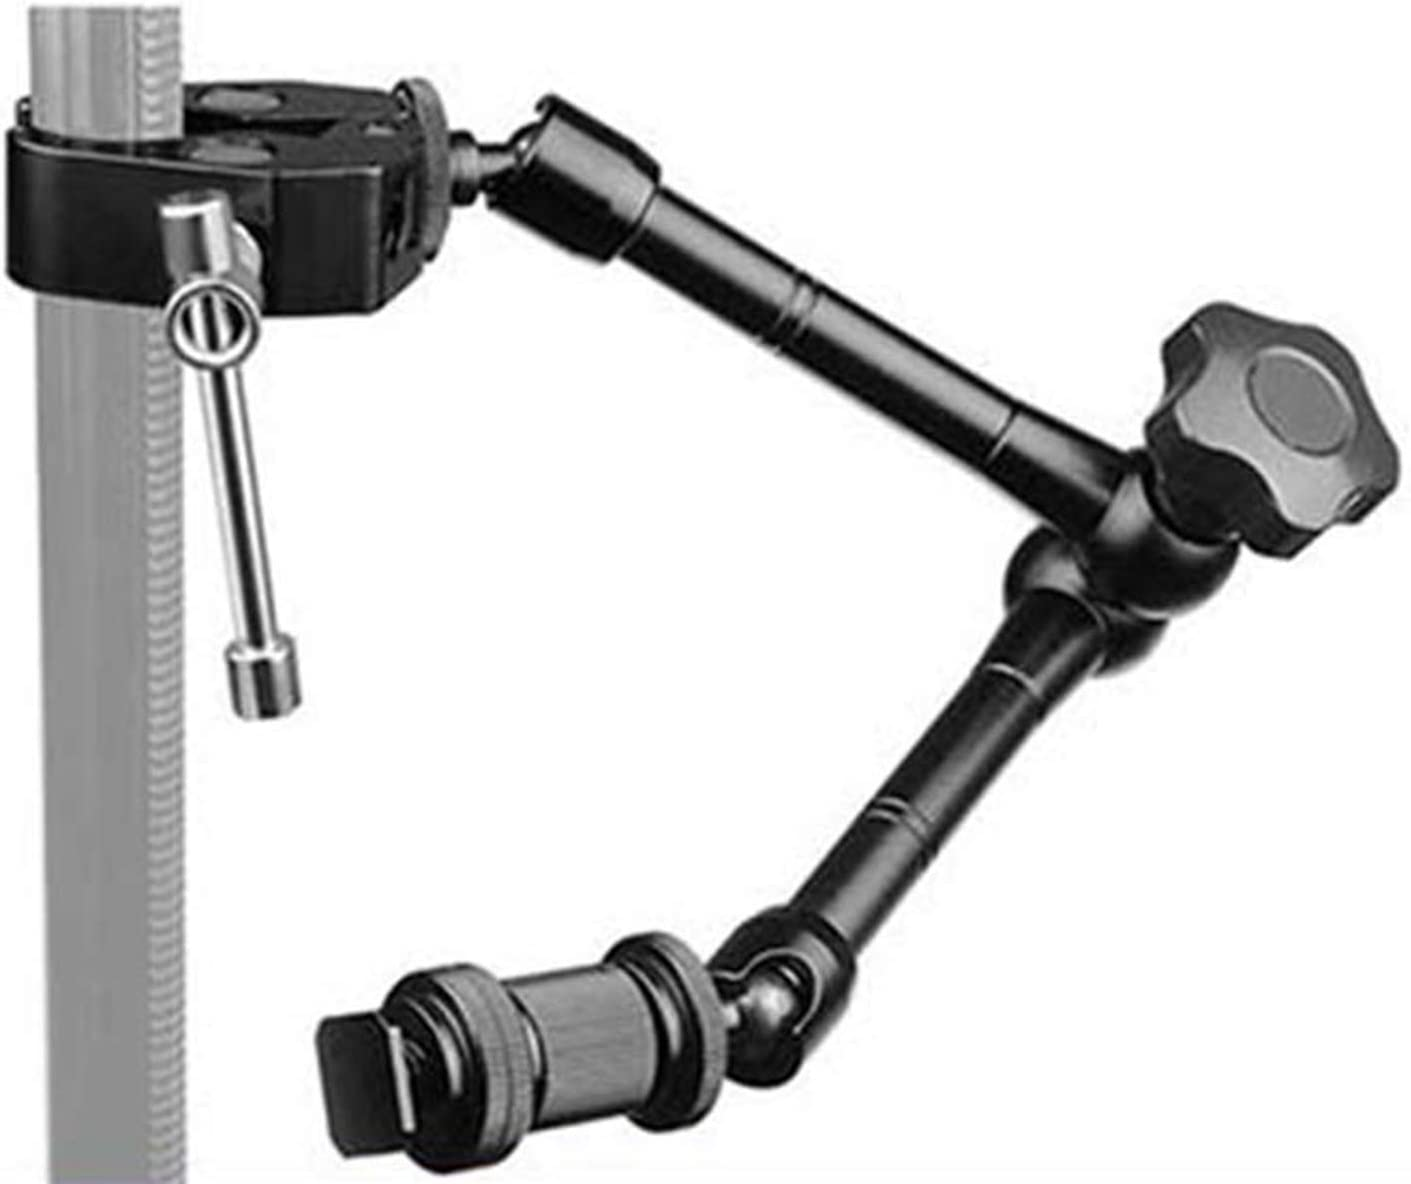 Semoic Magic Arm with Super Clamp 11 Articulating Friction Crab Clamp with 1//4 and 3//8 Thread for DSLR Camera Rig Monitor,Led Lights and Flash Light